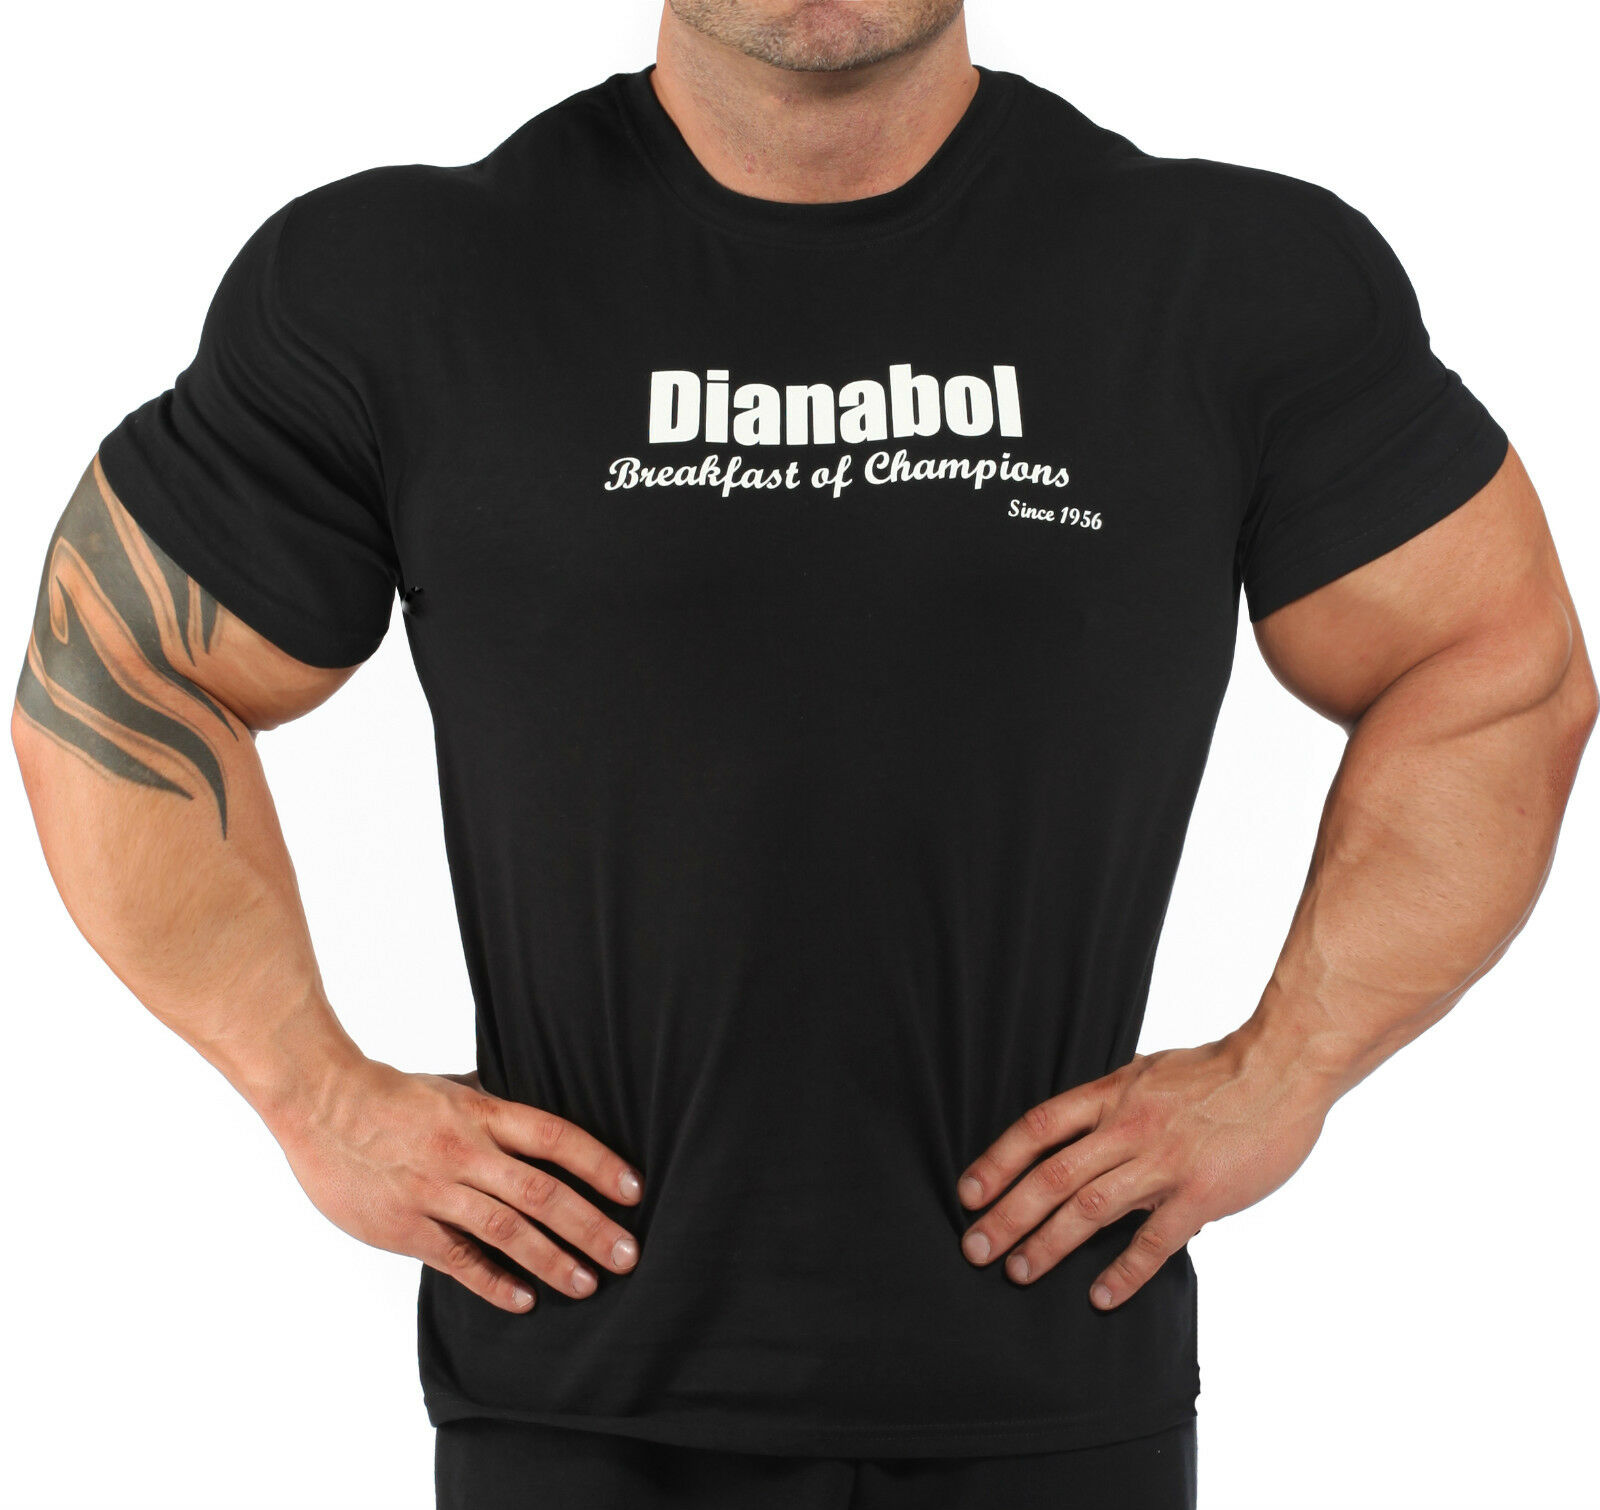 Black steroid bodybuilding t shirt workout gym clothing j for T shirts for gym workout